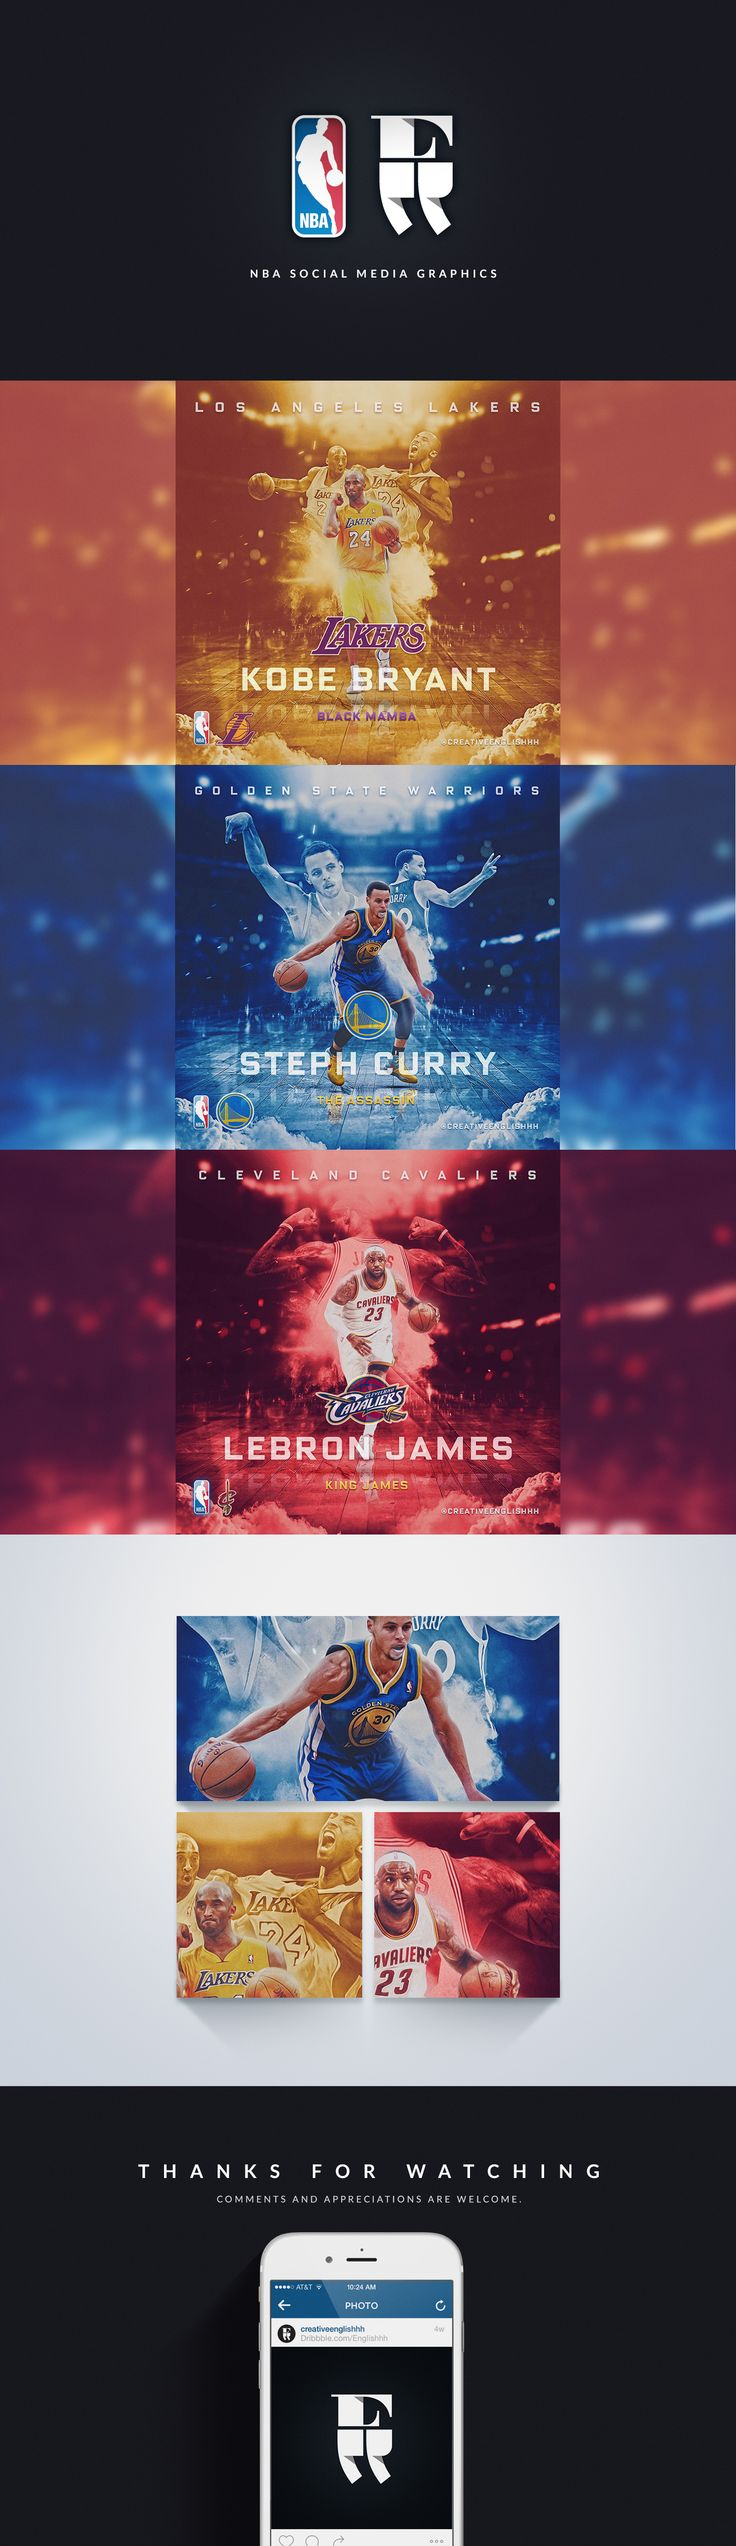 Self-initiated. I wanted to create a series of high quality graphics for the NBA's biggest stars.